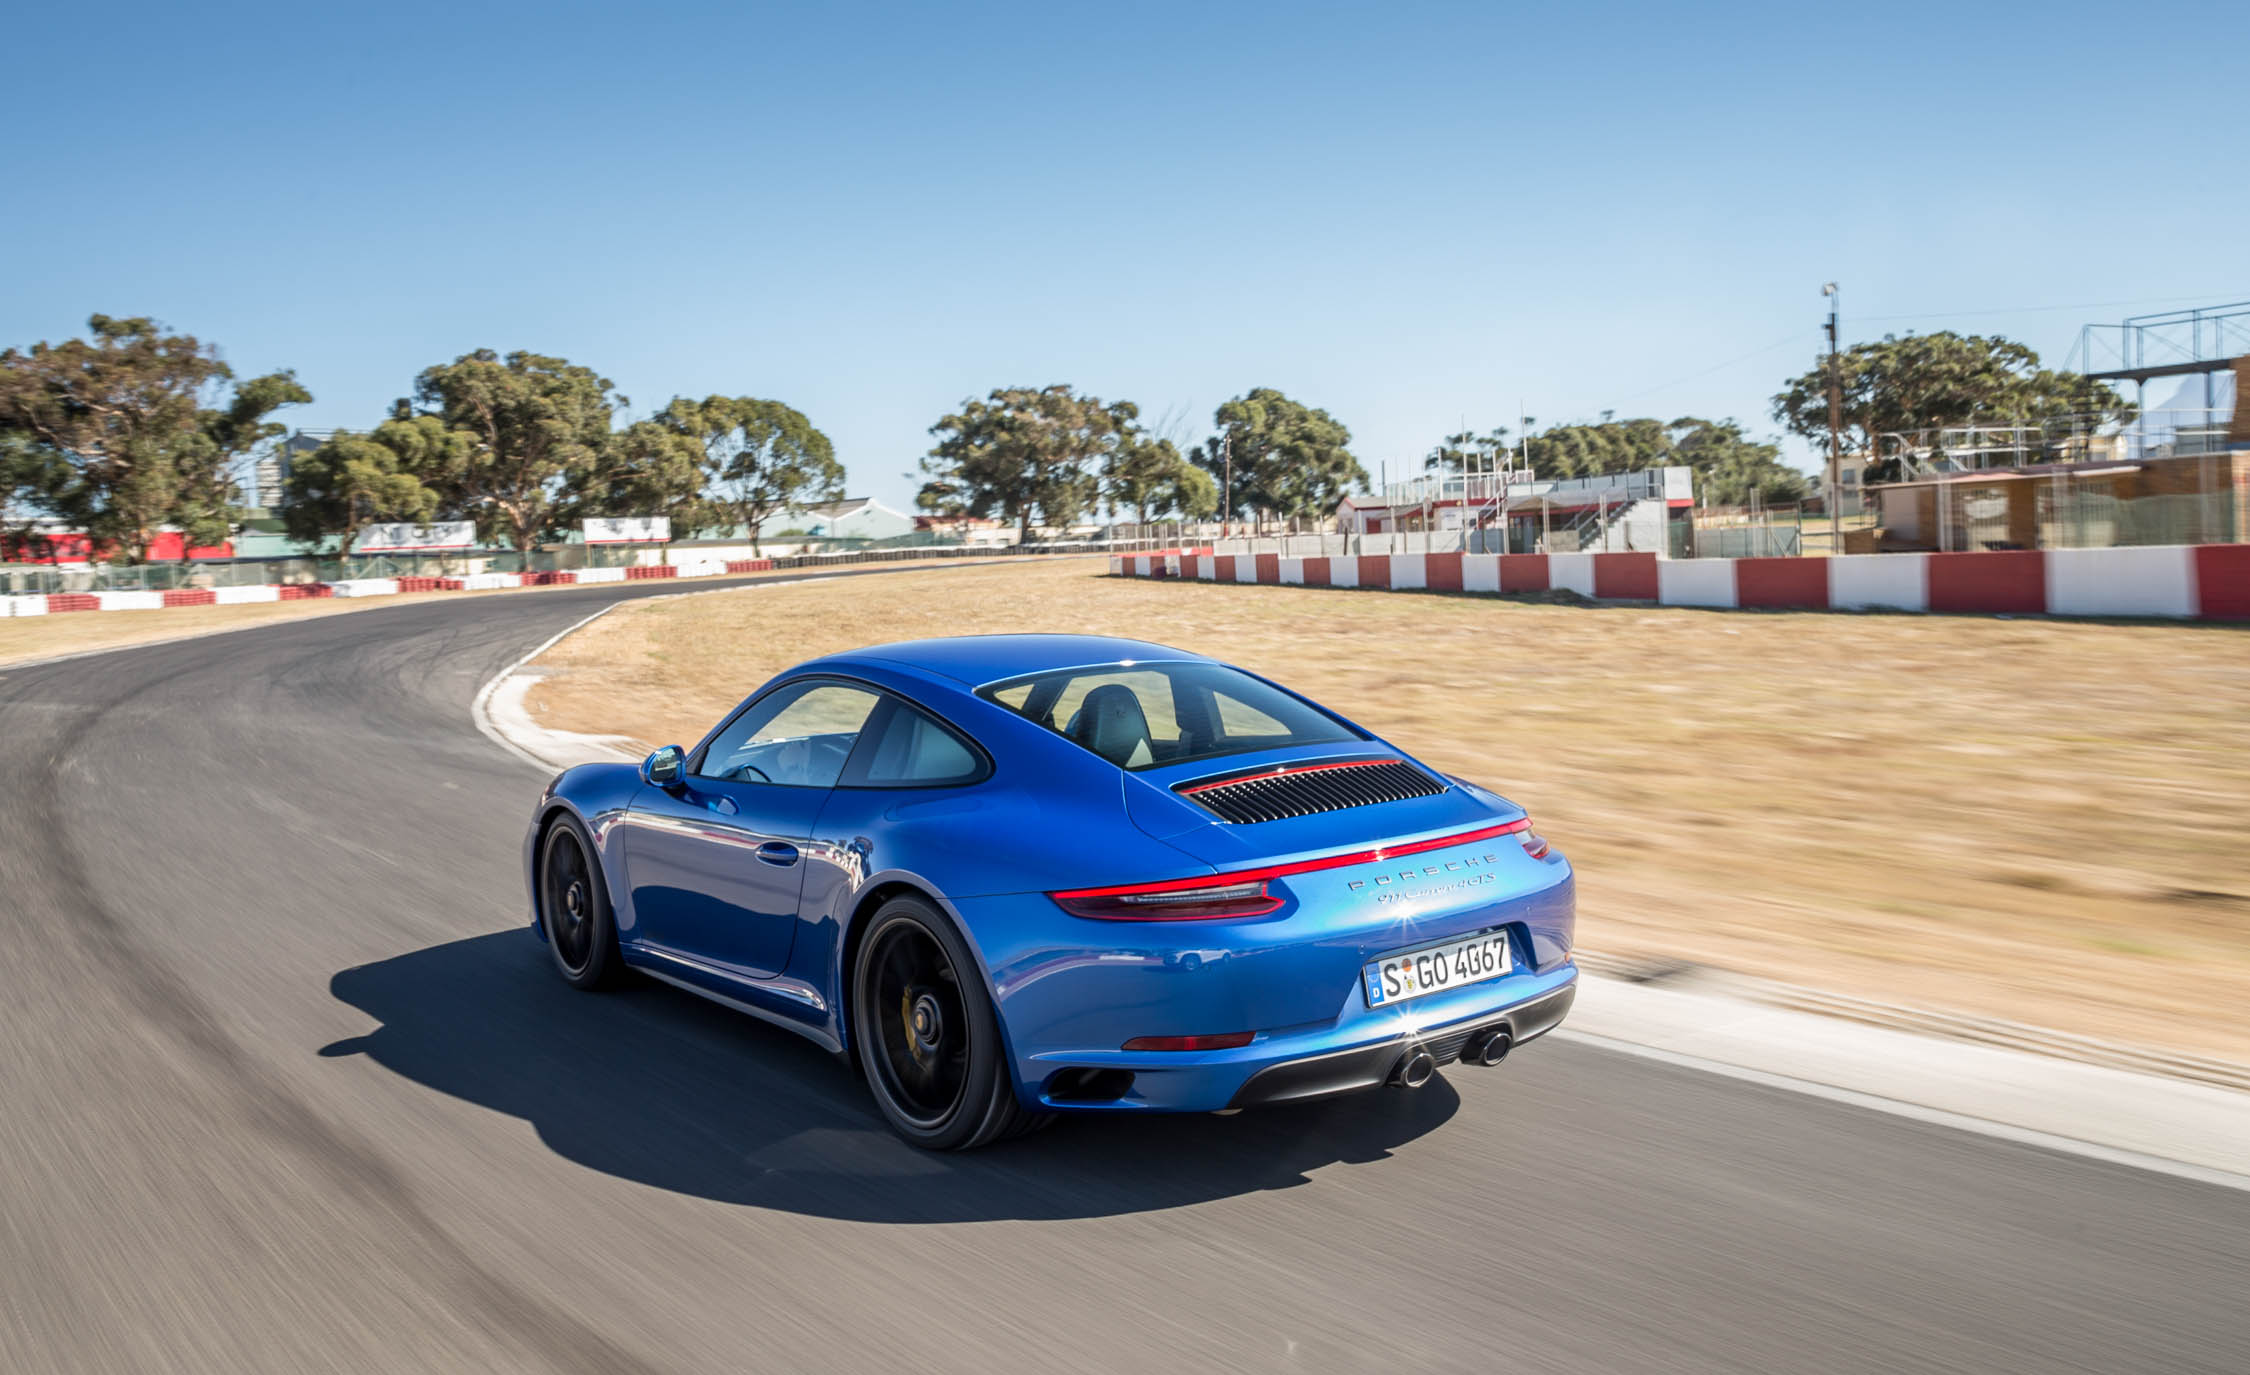 2017 Porsche 911 Carrera 4 GTS Coupe Test Drive Side And Rear View (Photo 29 of 97)